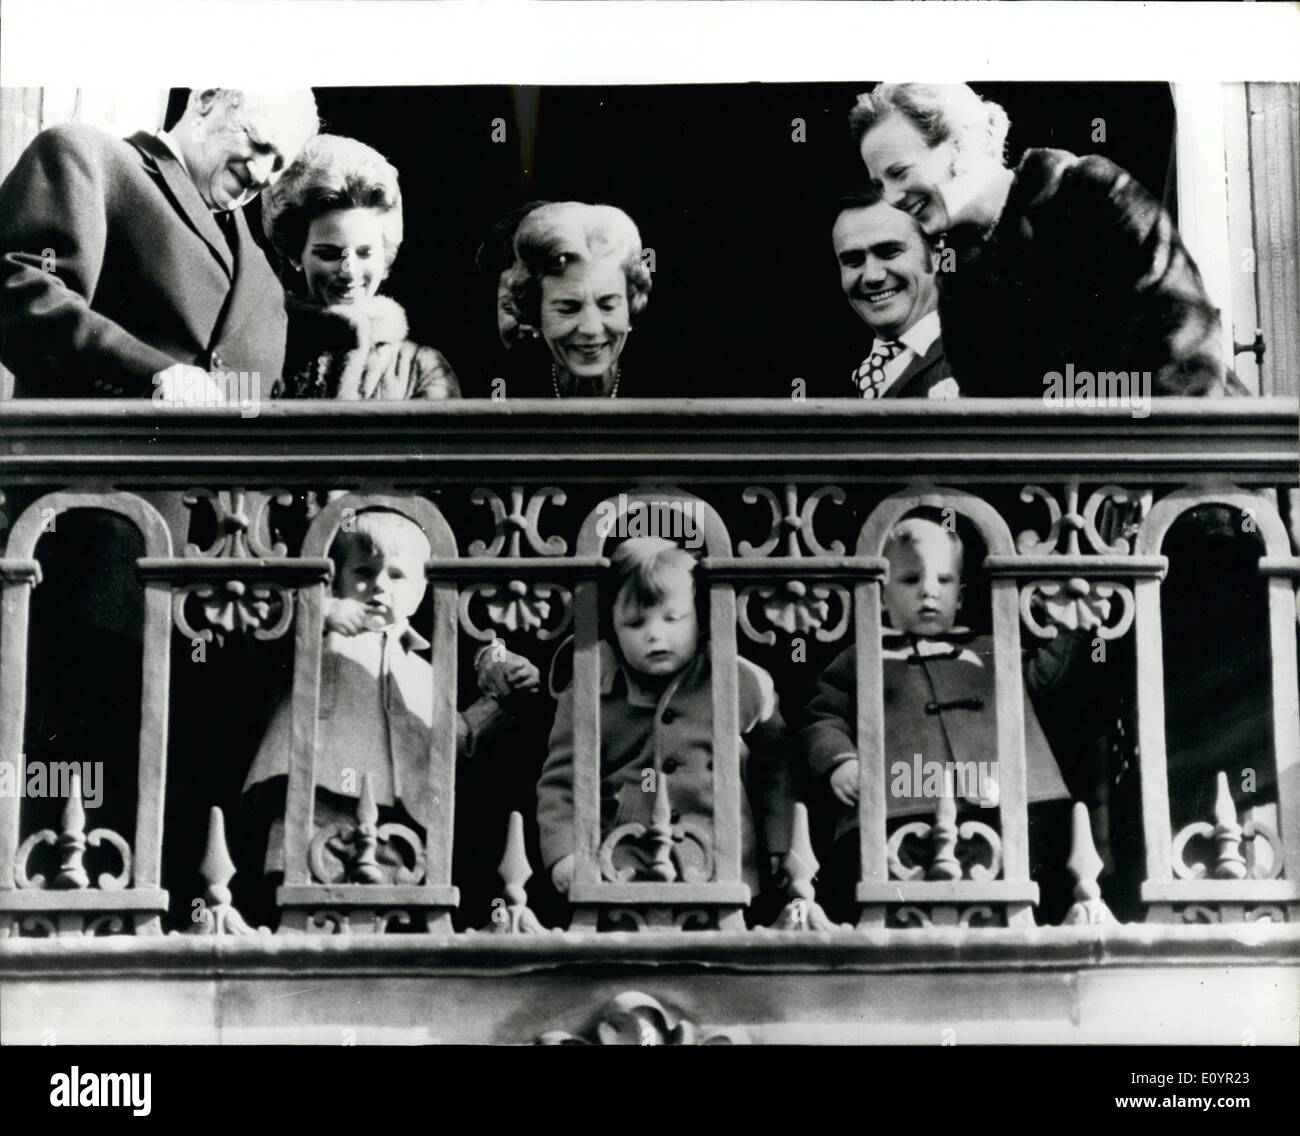 Mar. 03, 1971 - King Frederik of Denmark celebrates his 72nd birthday: King Frederik of Denmark celebrated his 72nd birthday this week with a family gathering at Amalienborg Castle. Photo shows members of the Danish Royal Family appear on the balcony to acknowledge the cheers of the crowd. (L to R) King Frederik, Queen Anne-Marie Princess Benedikte, Queen Ingrid Prince Henrik, Princess Margarethe. Seen through the balustrade (L to R) the Prince Gustav, Frederik and Joachim. - Stock Image